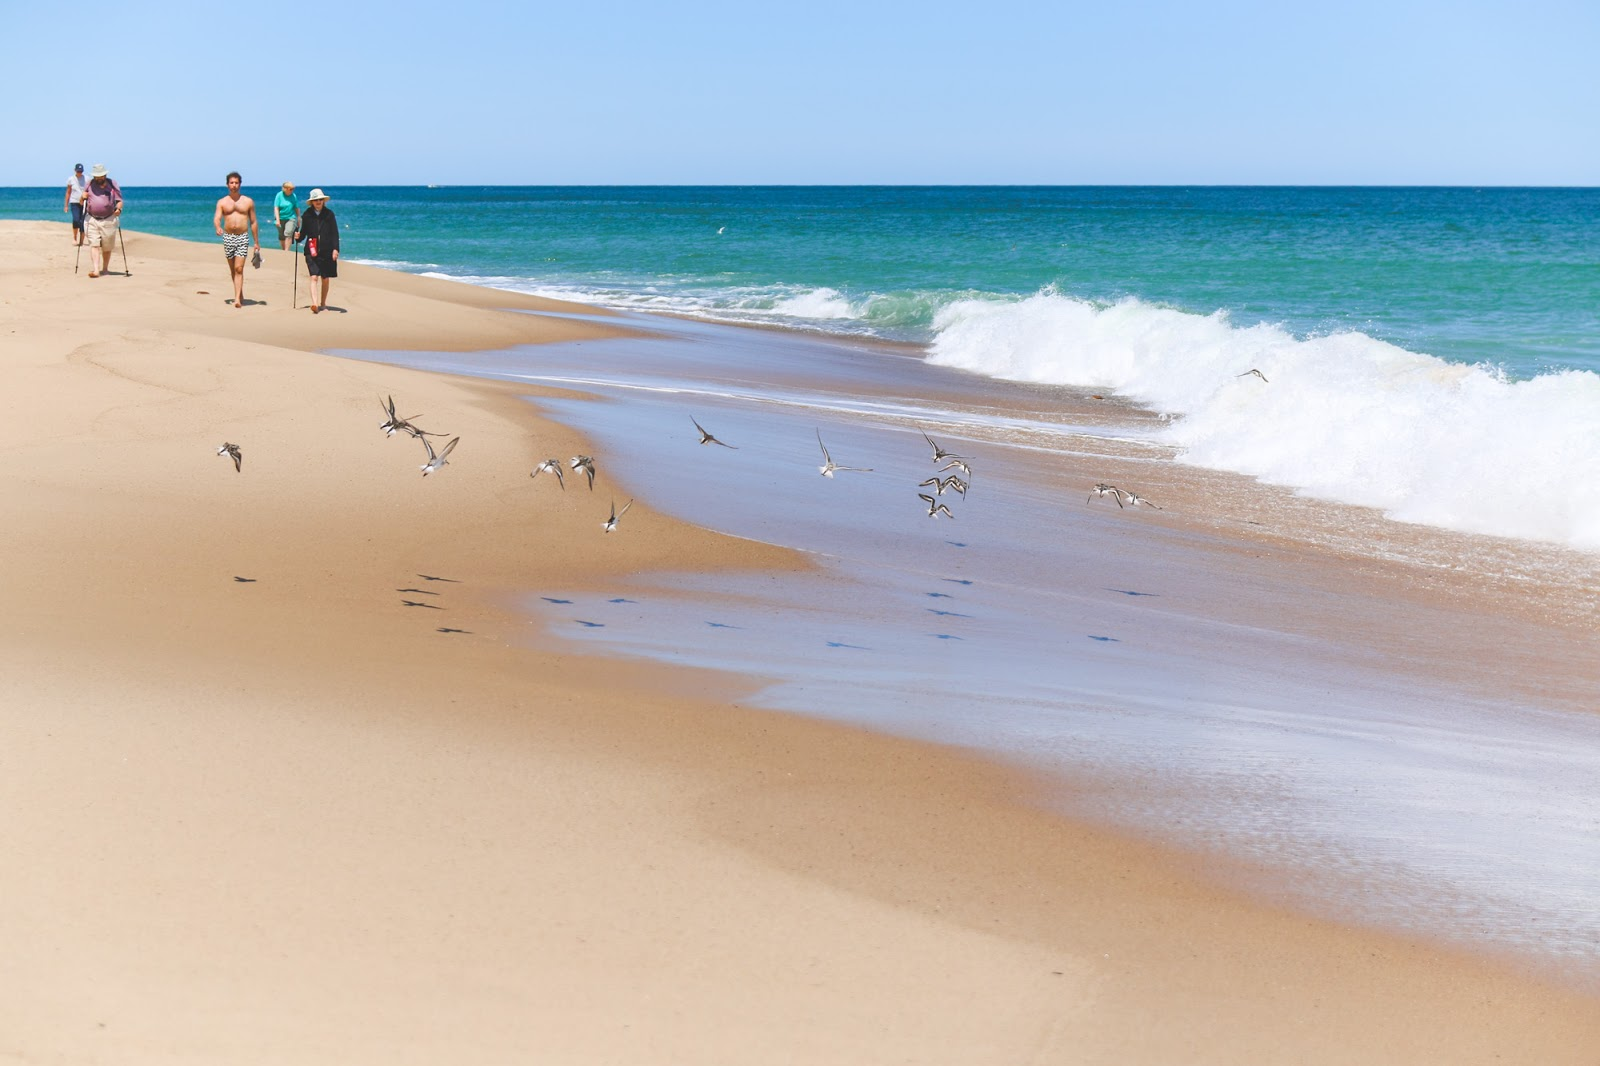 Marvelous Cape Cod 5 Nantucket Part - 11: The Natural Beauty Of The Cape Cod National Seashore The Journey